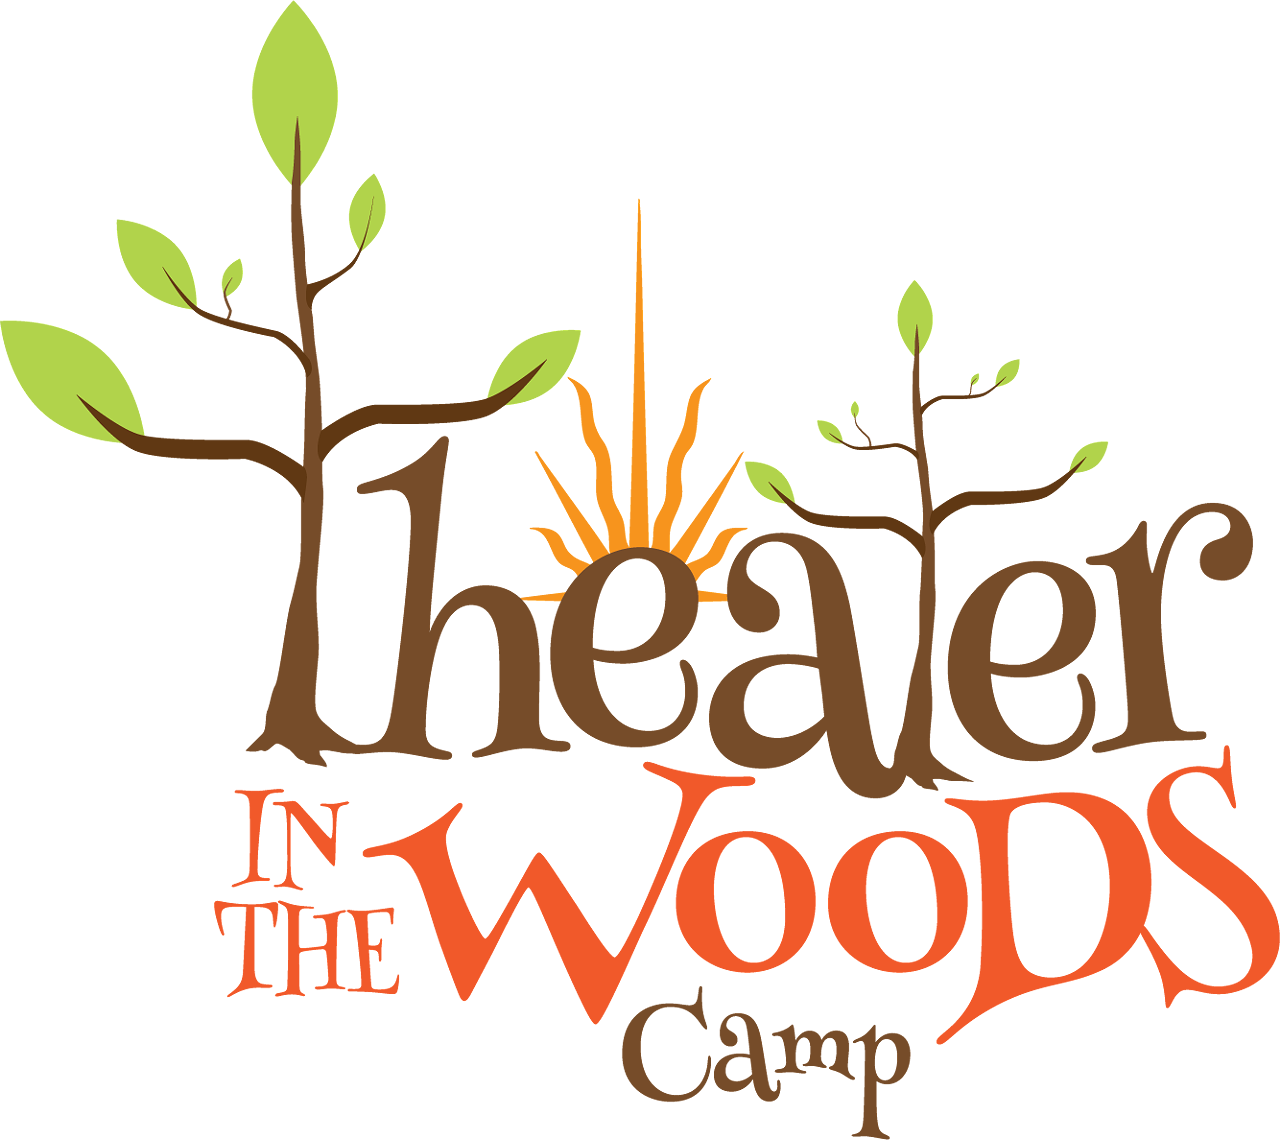 Theater In The Woods Camp Rutland County Performing Arts Visual Arts Camps